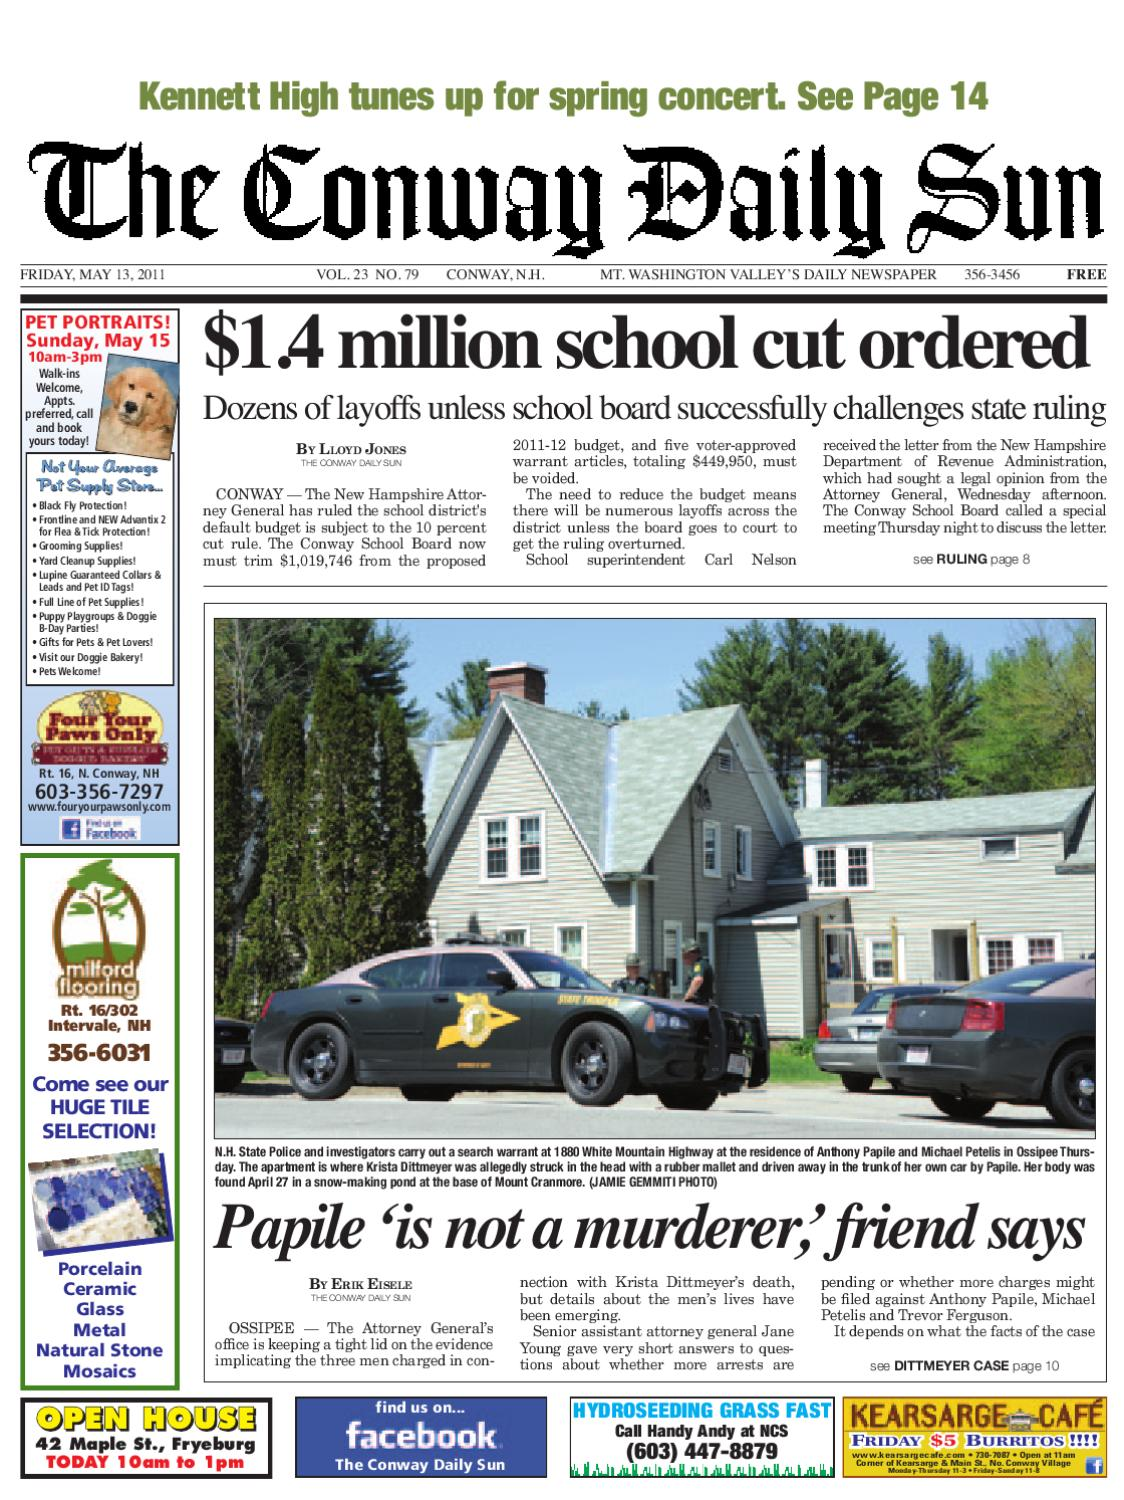 The Conway Daily Sun, Friday, May 13, 2011 by Daily Sun - issuu